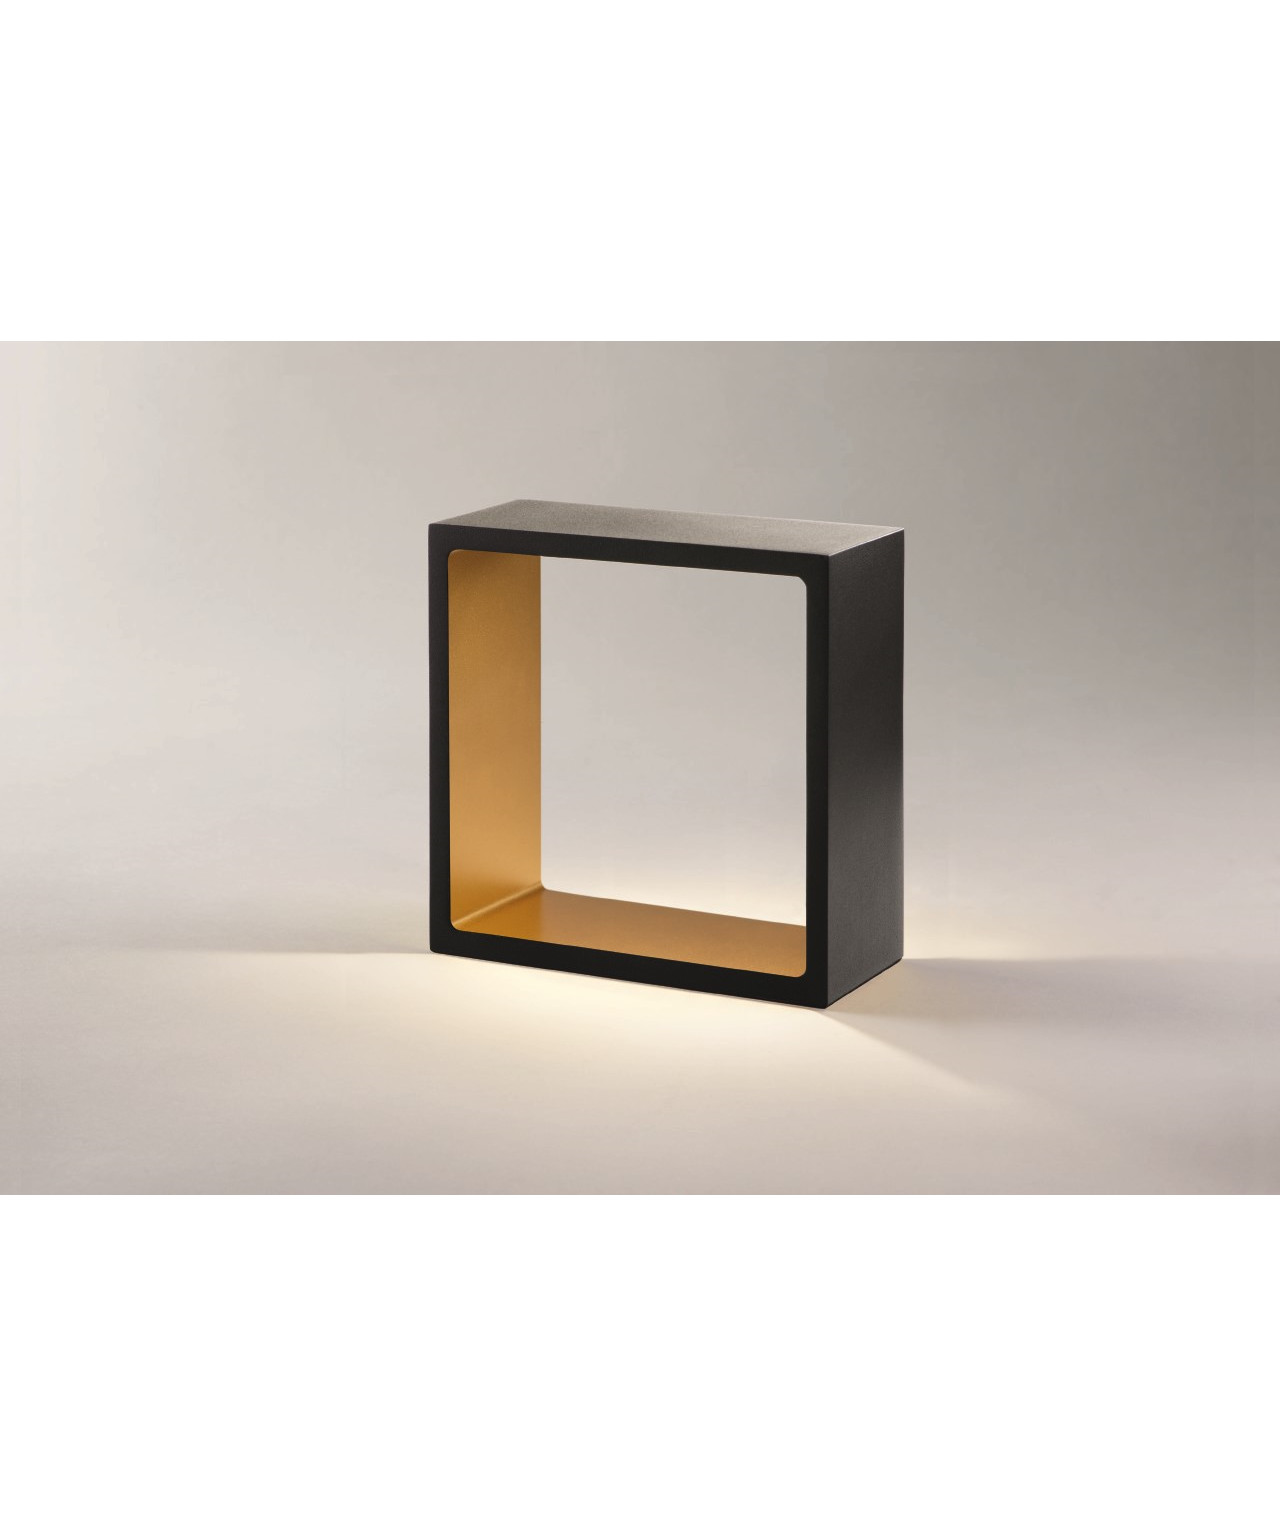 Light-point Fusion led bordlampe sort/guld - light-point fra lampemesteren.dk